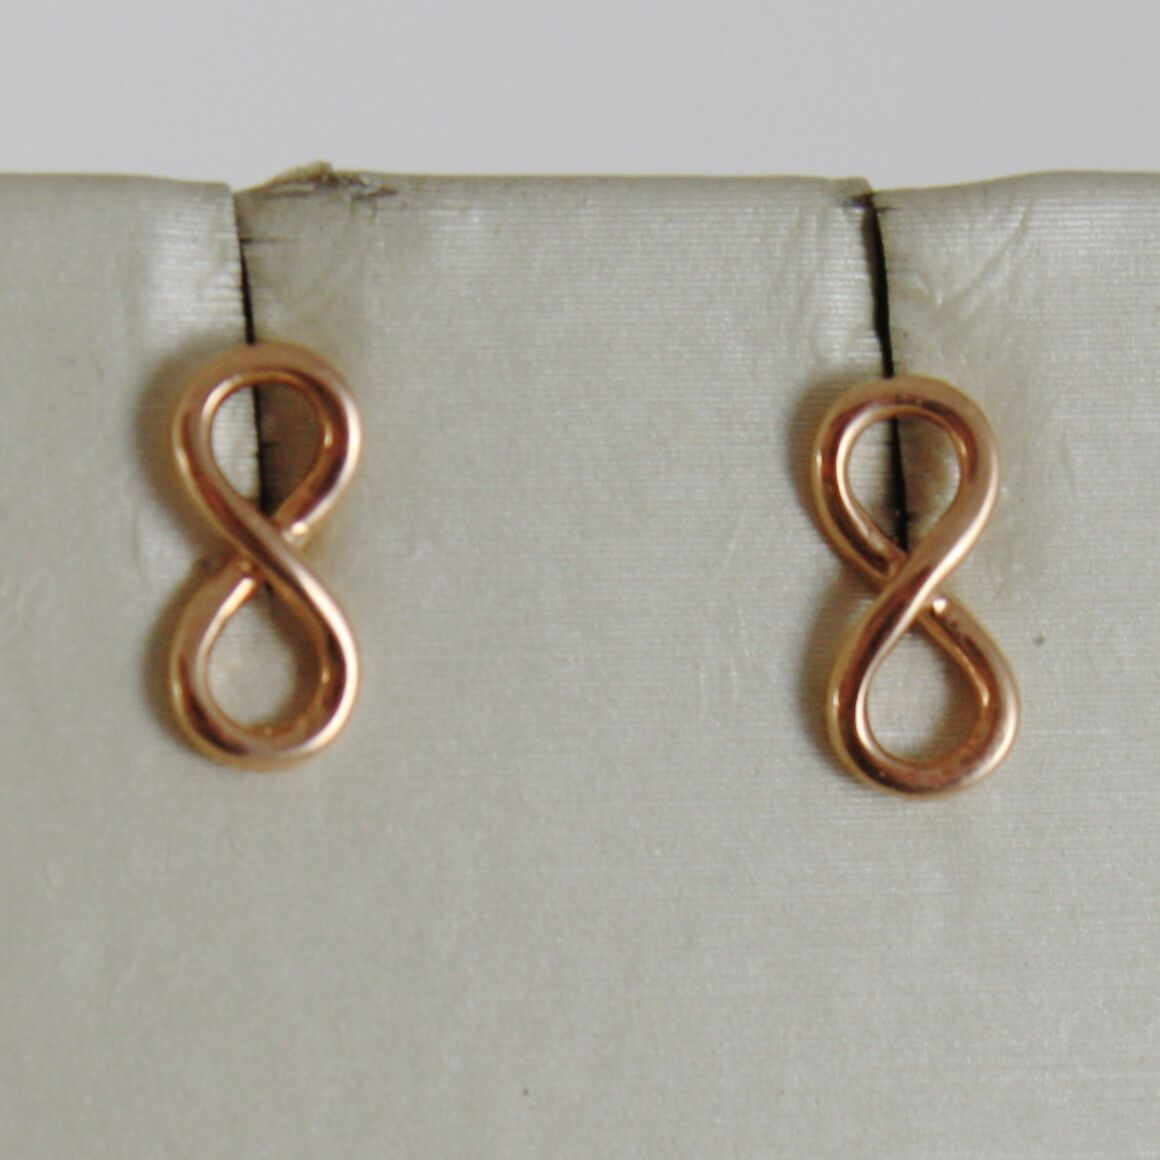 SOLID 18K ROSE GOLD EARRINGS WITH MINI INFINITY SYMBOL, INFINITE, MADE IN ITALY